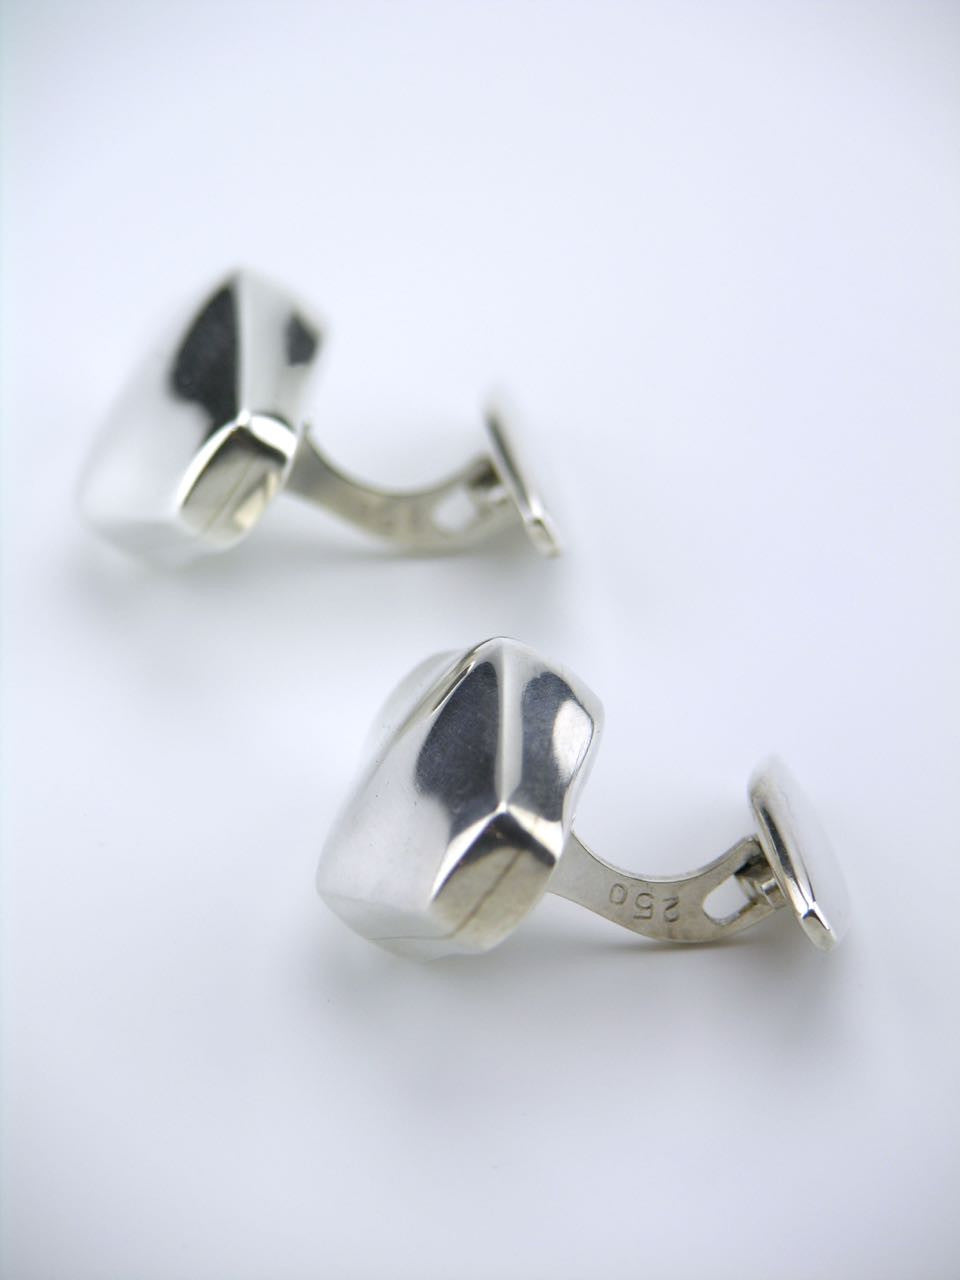 Georg Jensen pair of silver lozenge cufflinks - design 250